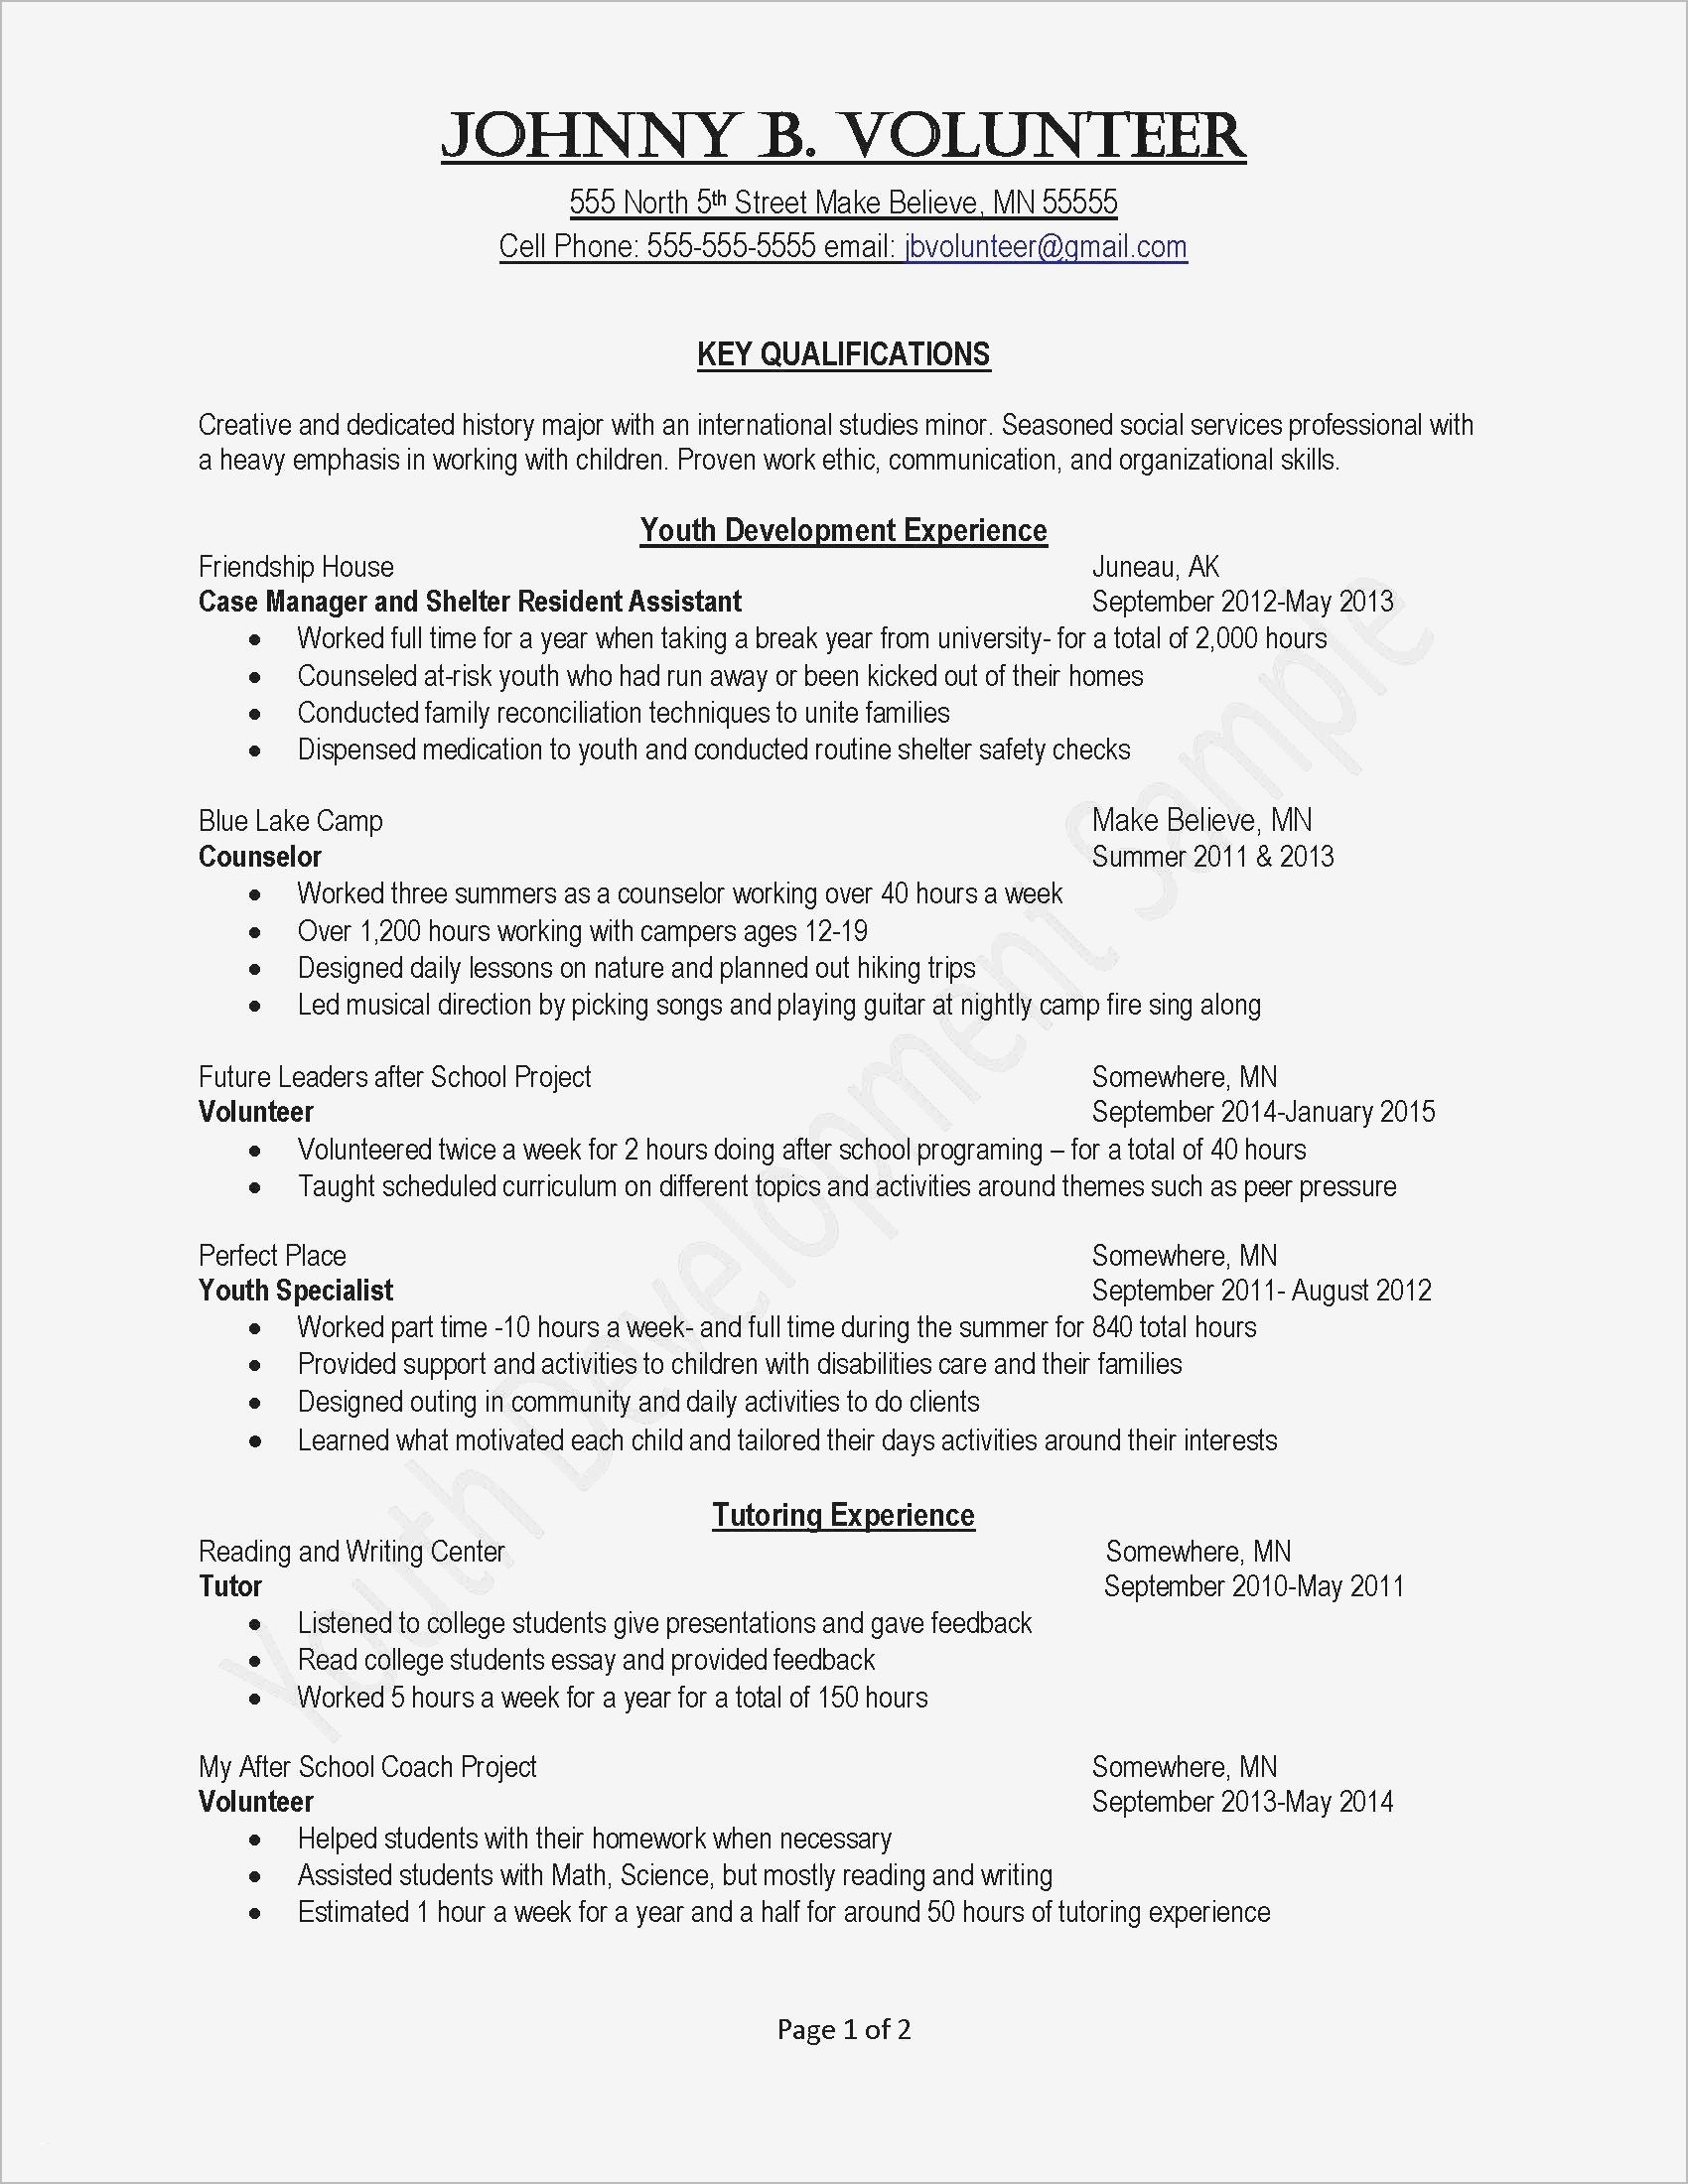 Free Template for A Cover Letter for A Resume - Free Template for Resume Cover Letter Elegant Job Fer Letter